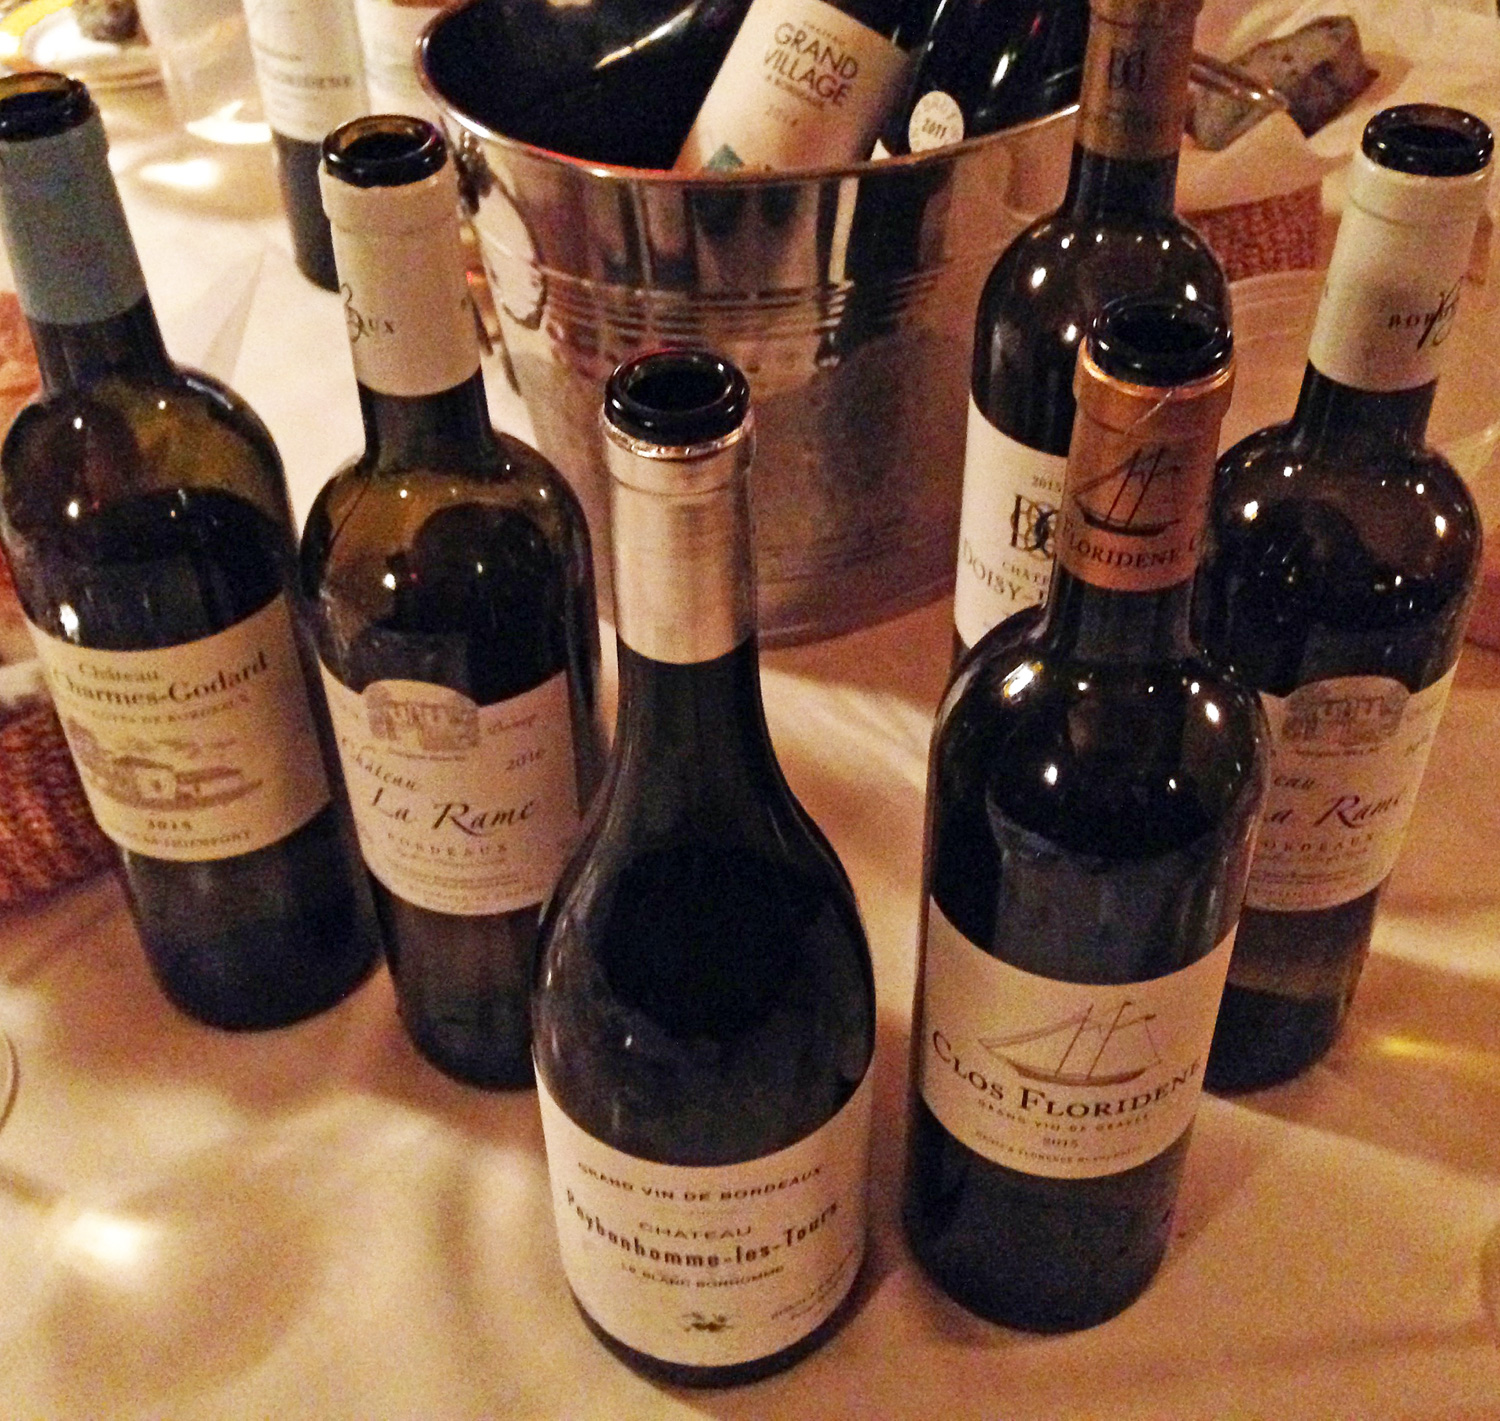 A cluster of favorites at the Wine Media Guild Bordeaux Blanc tasting.